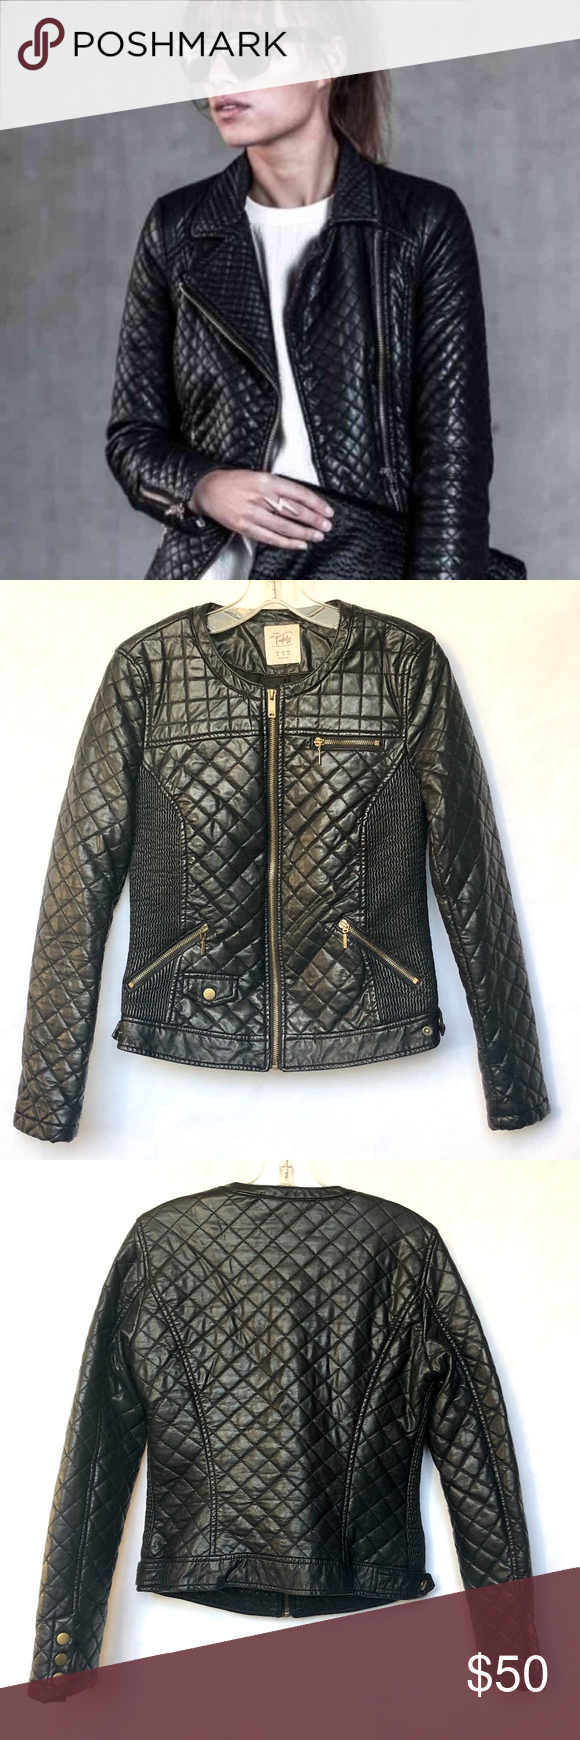 Zara Black Quilted Faux Leather Moto Jacket M Leather